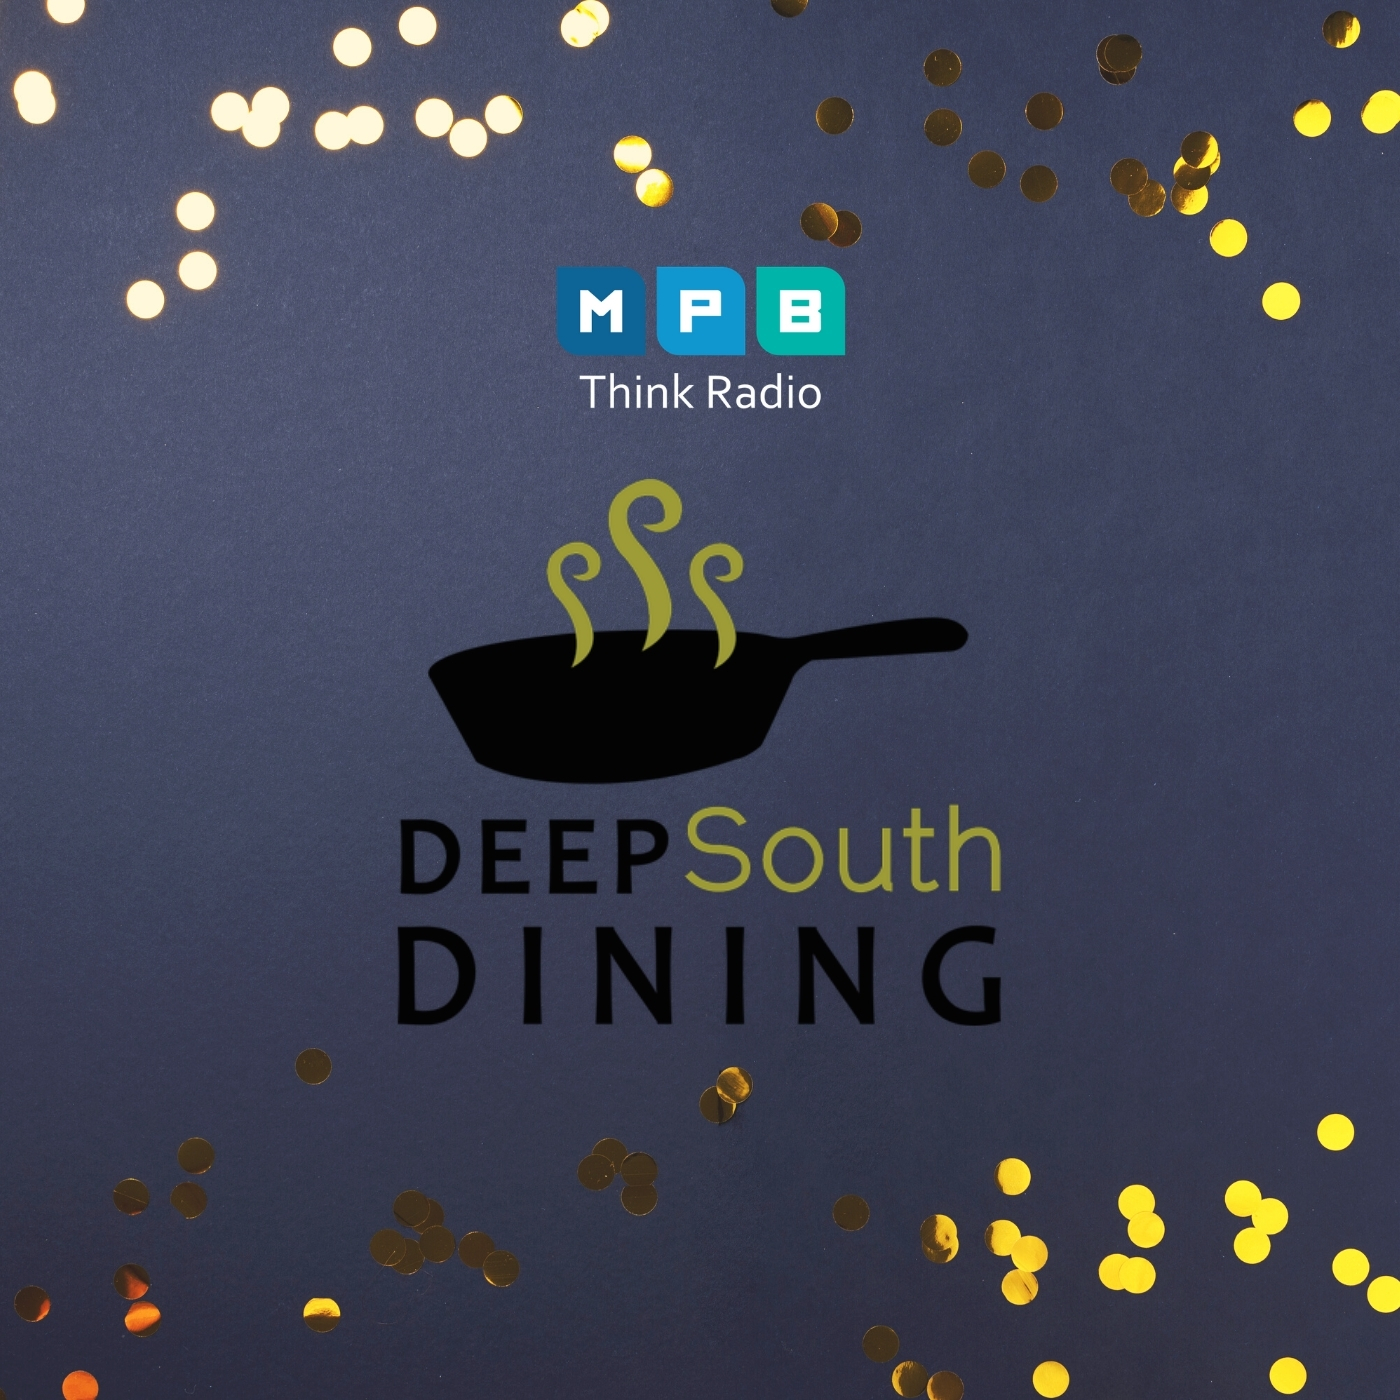 Deep South Dining | 2021 Habits